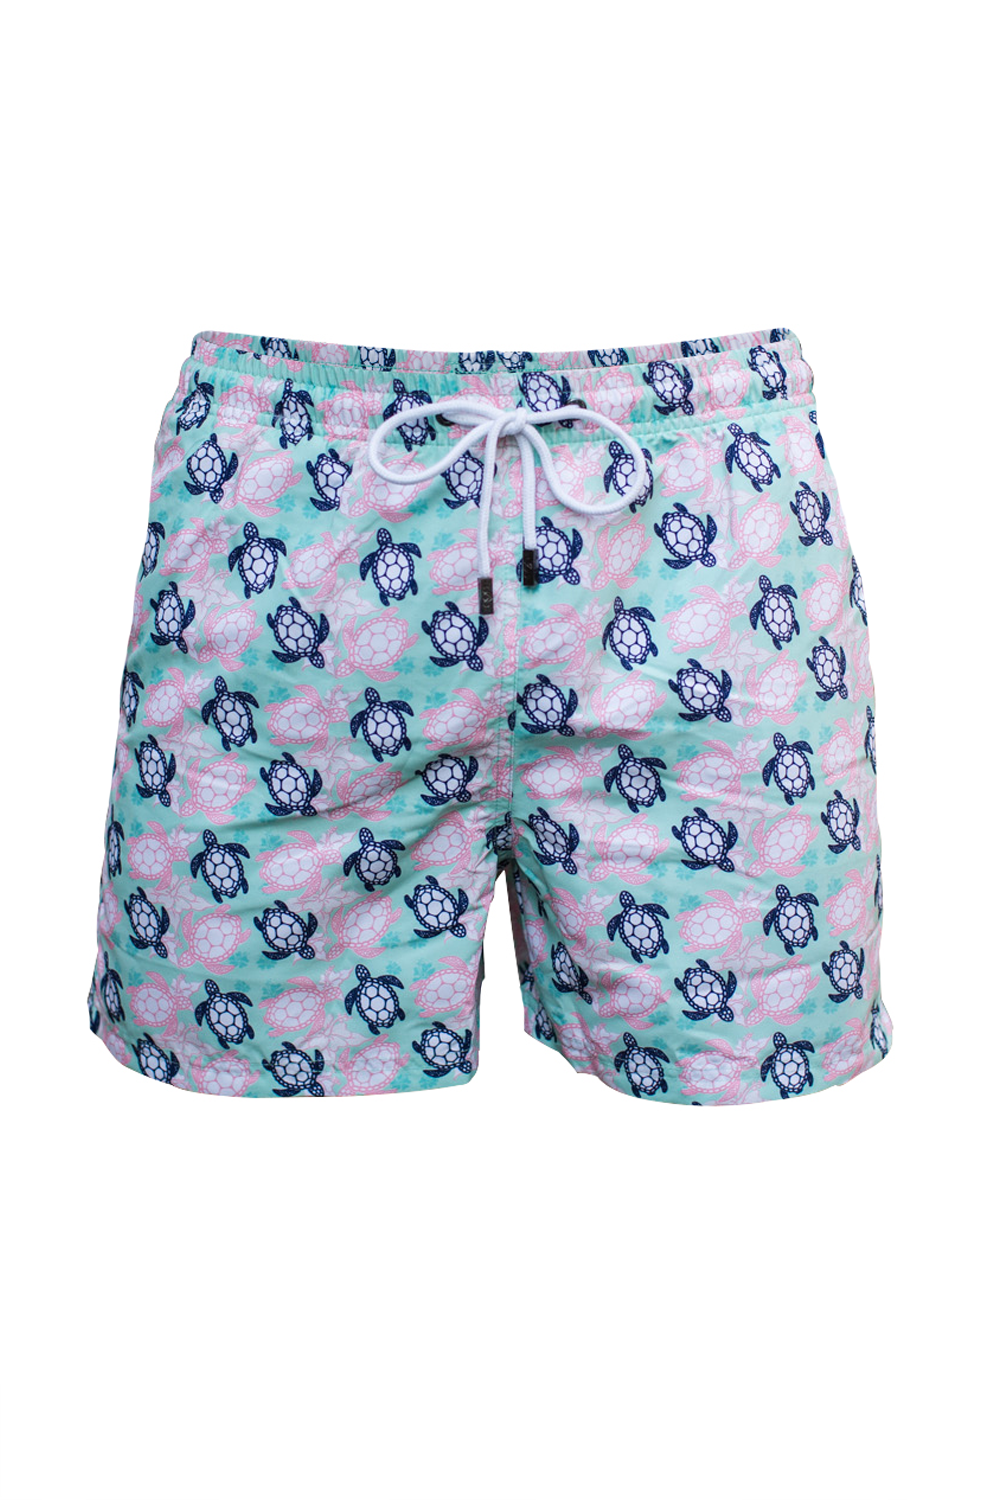 The Beach Turtle Green Swim Short